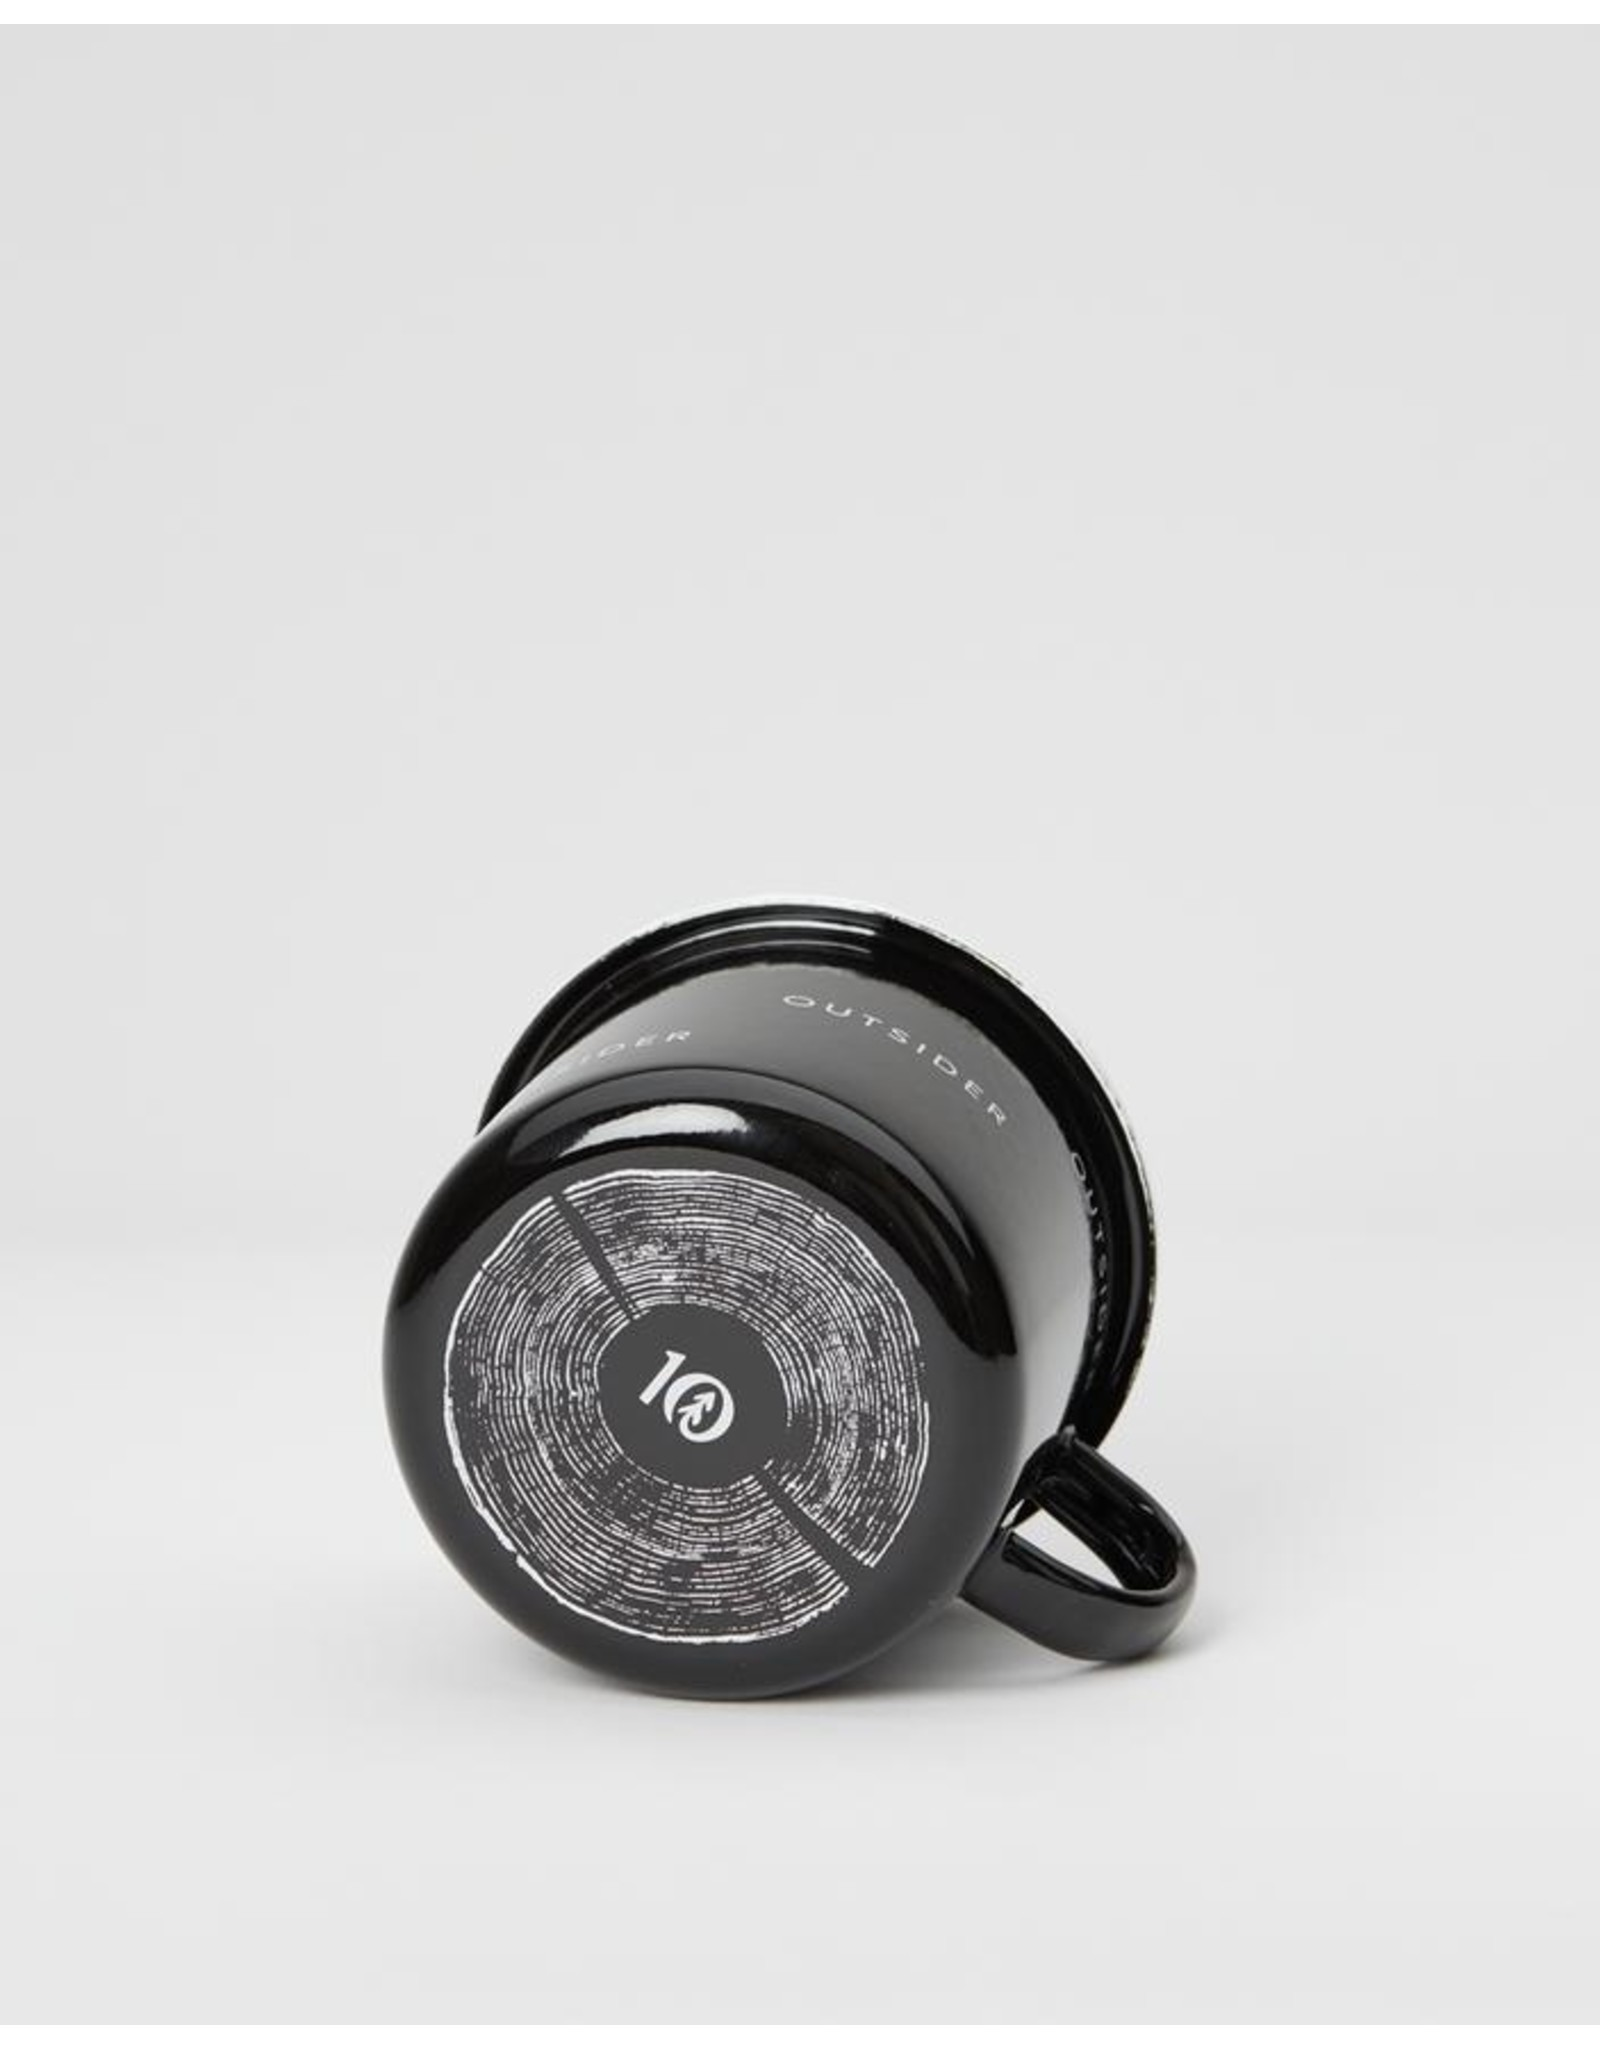 Ten Tree Enamel Camp Mug (Meteorite Black)